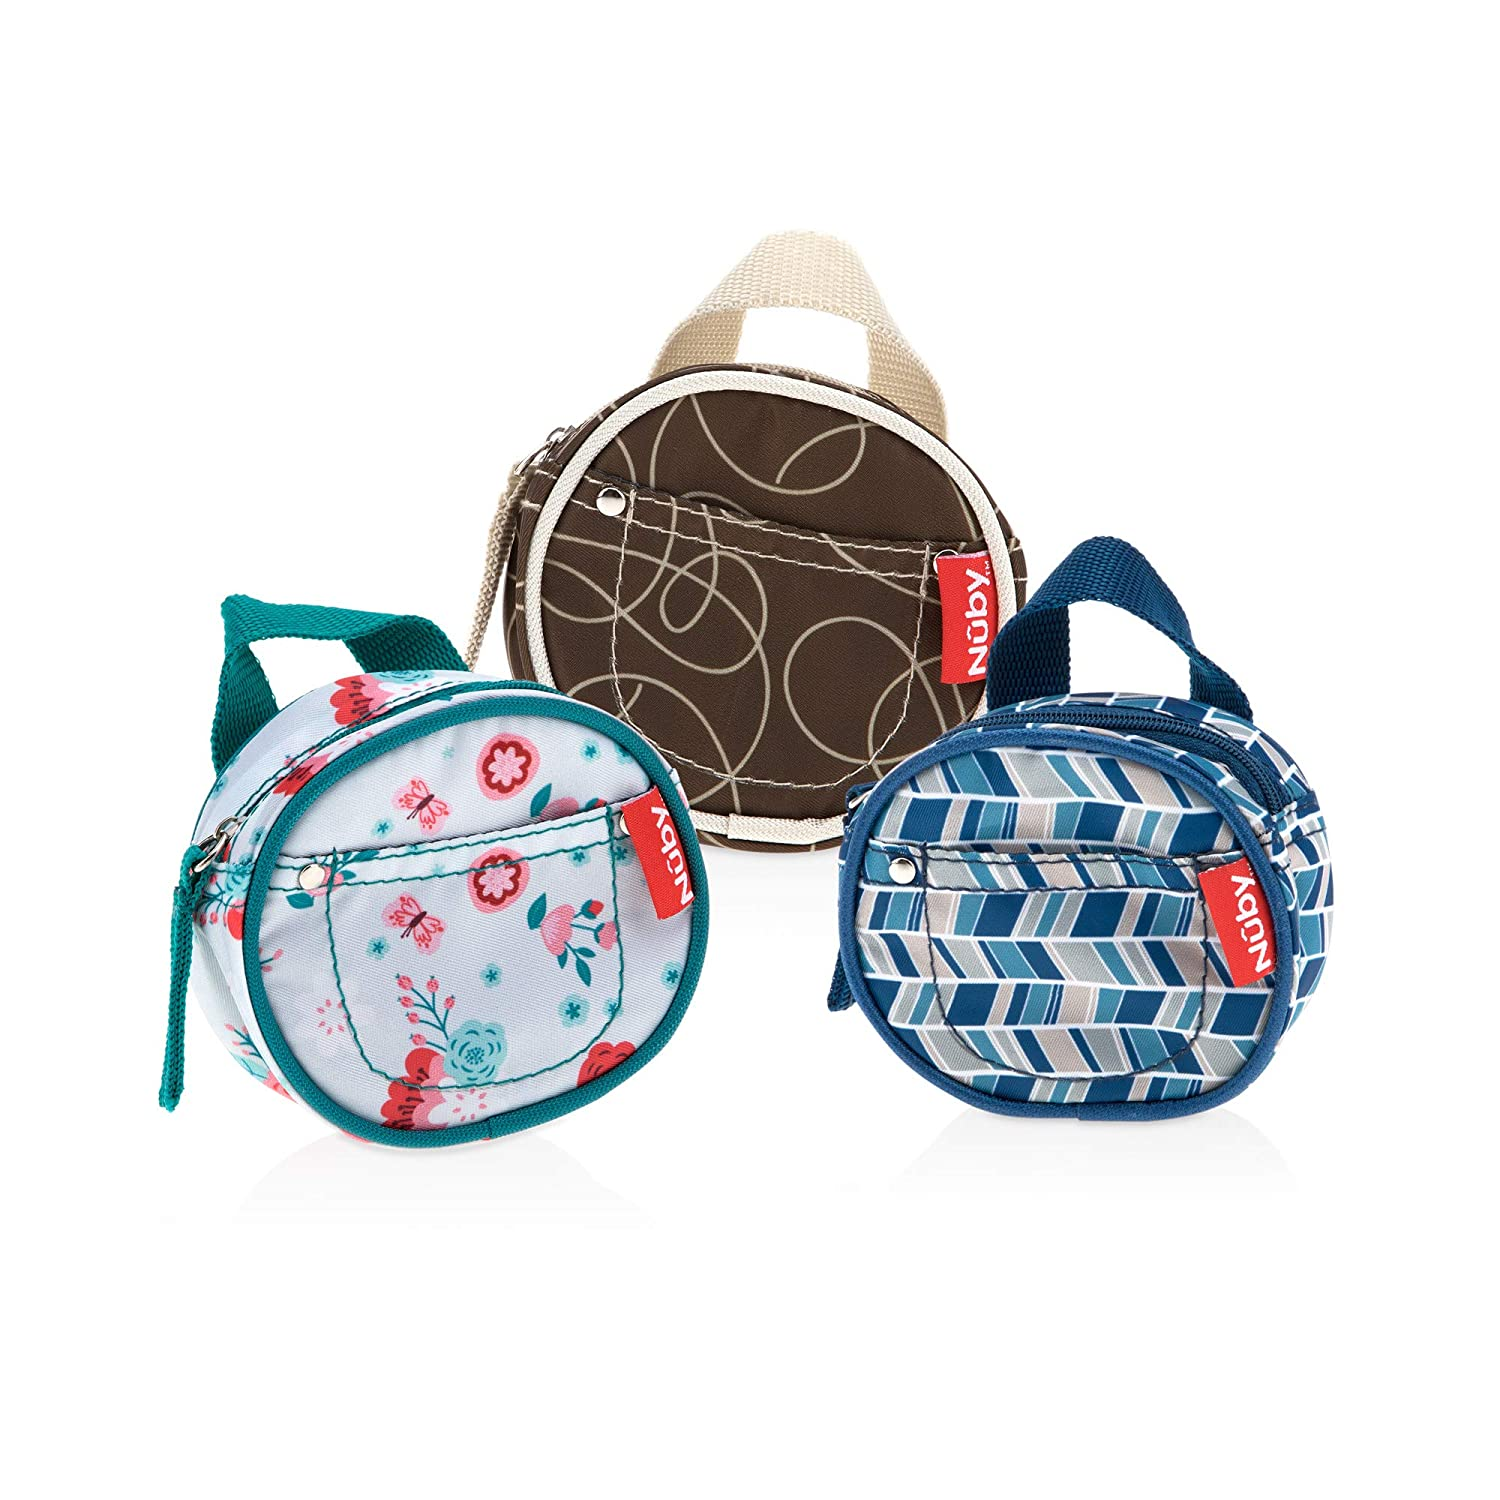 Set of 3 Nuby Pacifier Hygienic Paci-Pouch Combo for Travel